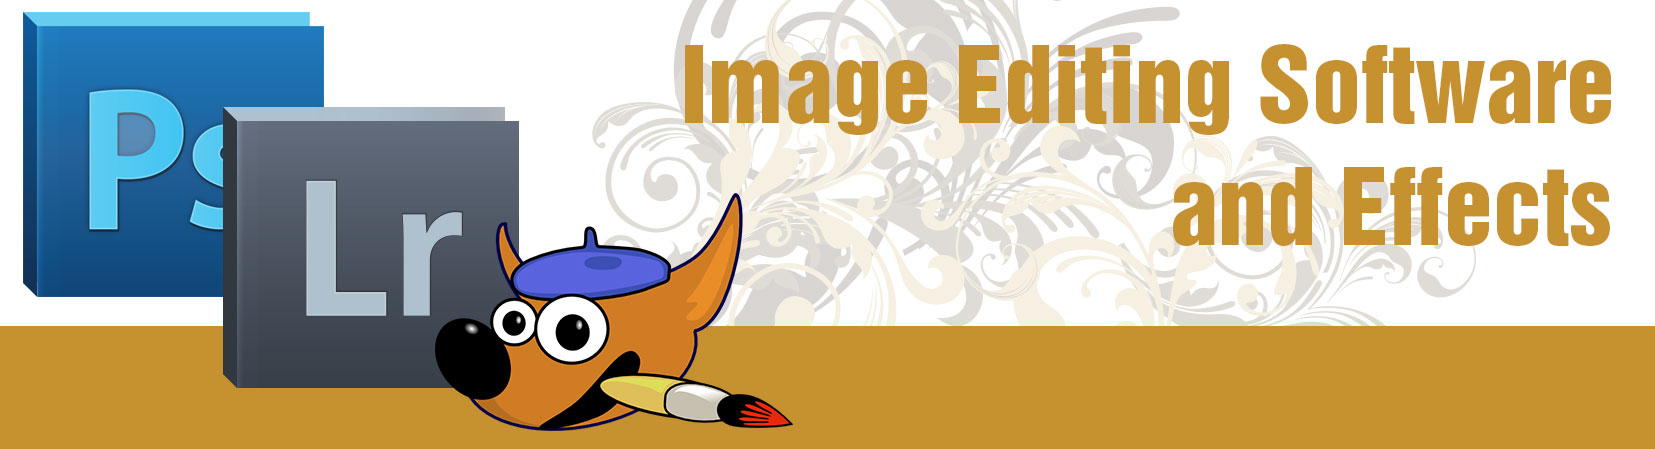 Image Editing Software and Effects